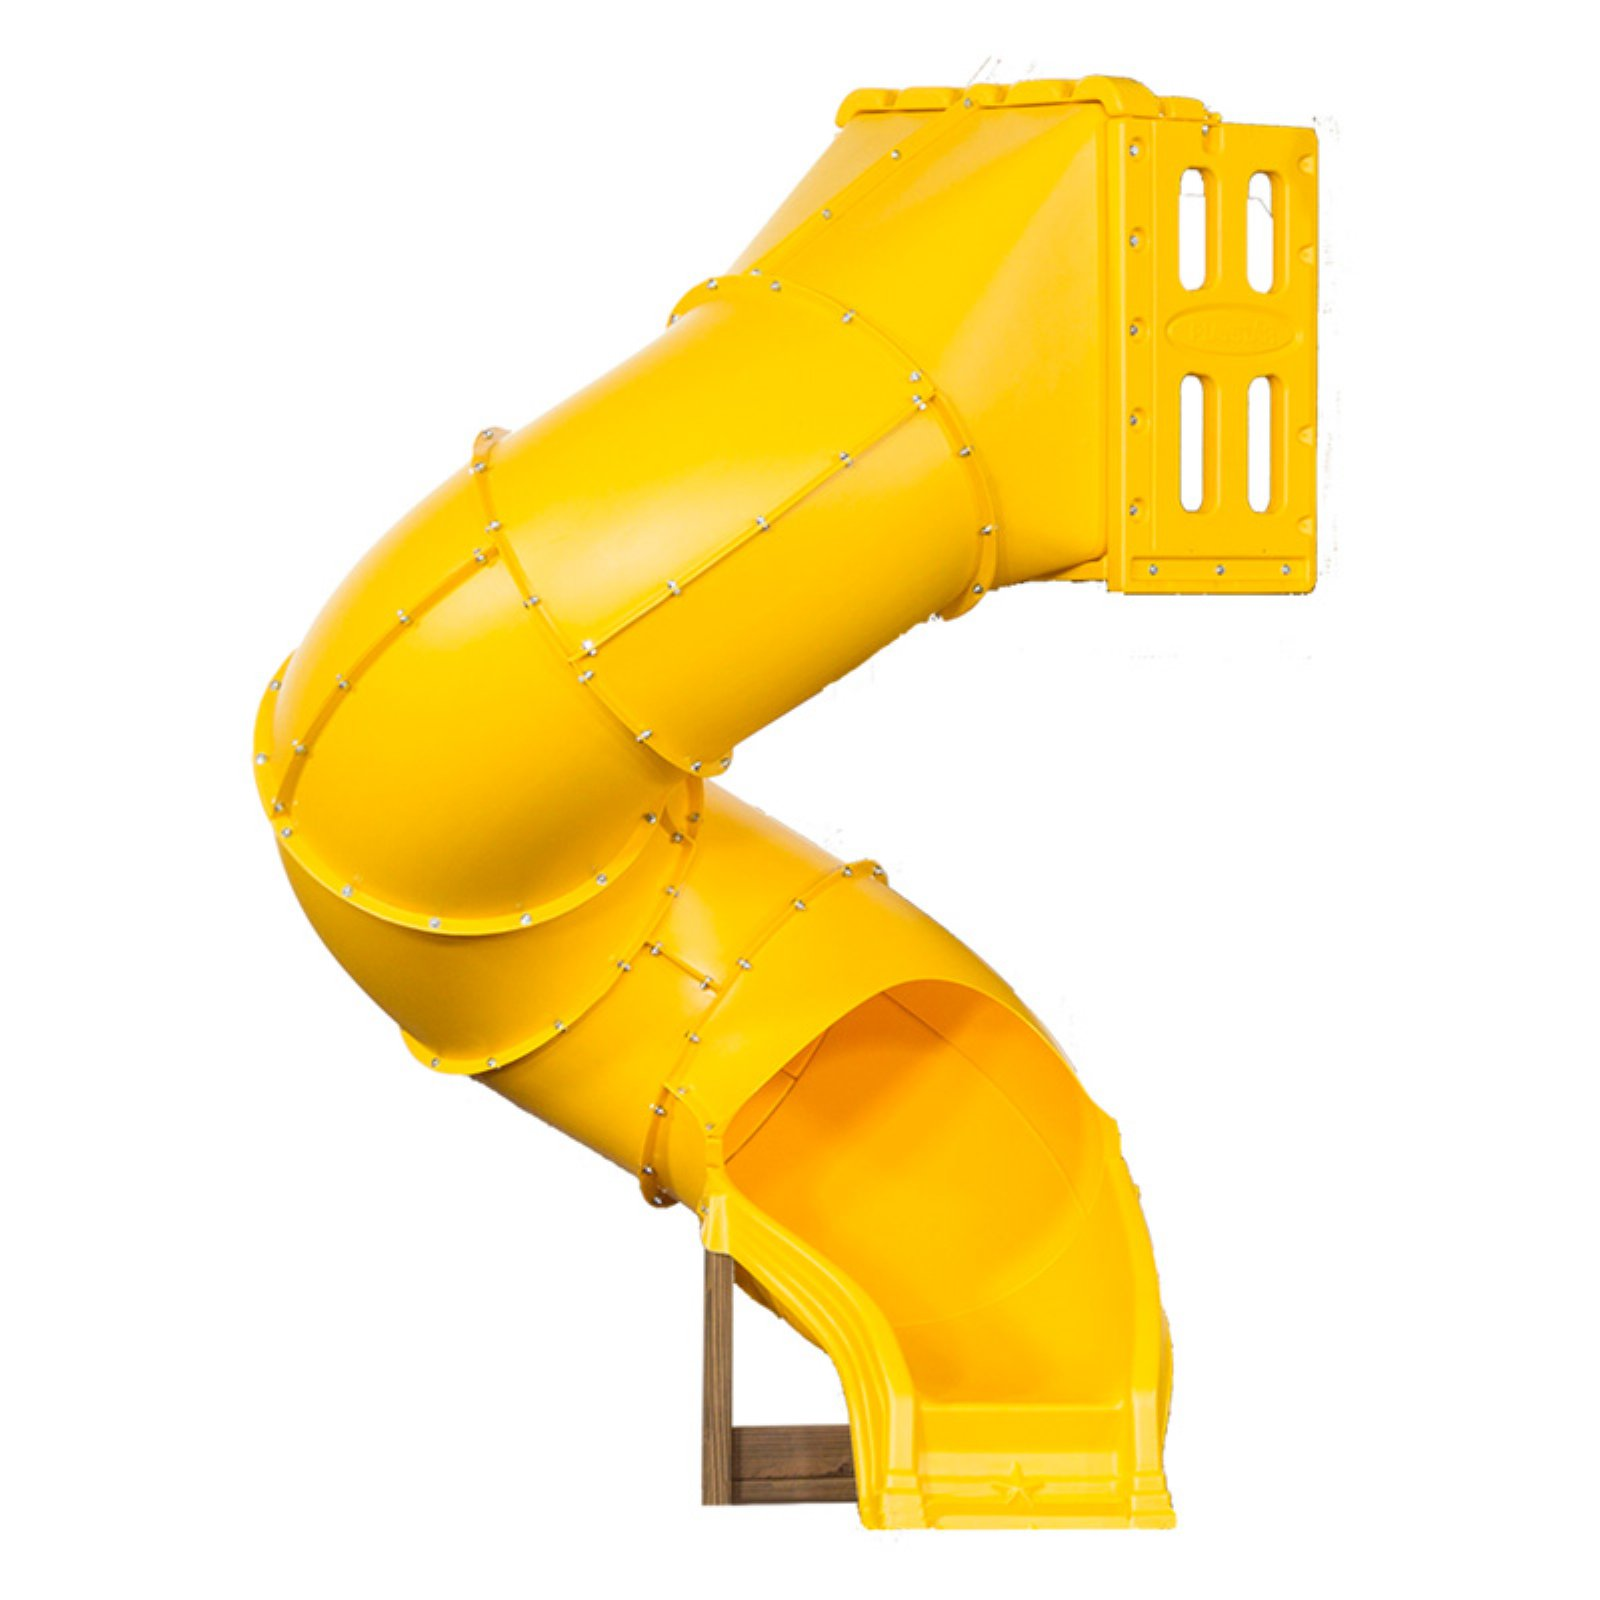 "PlayStar Spiral Tube Slide for 4' and 5"" High Play Decks"